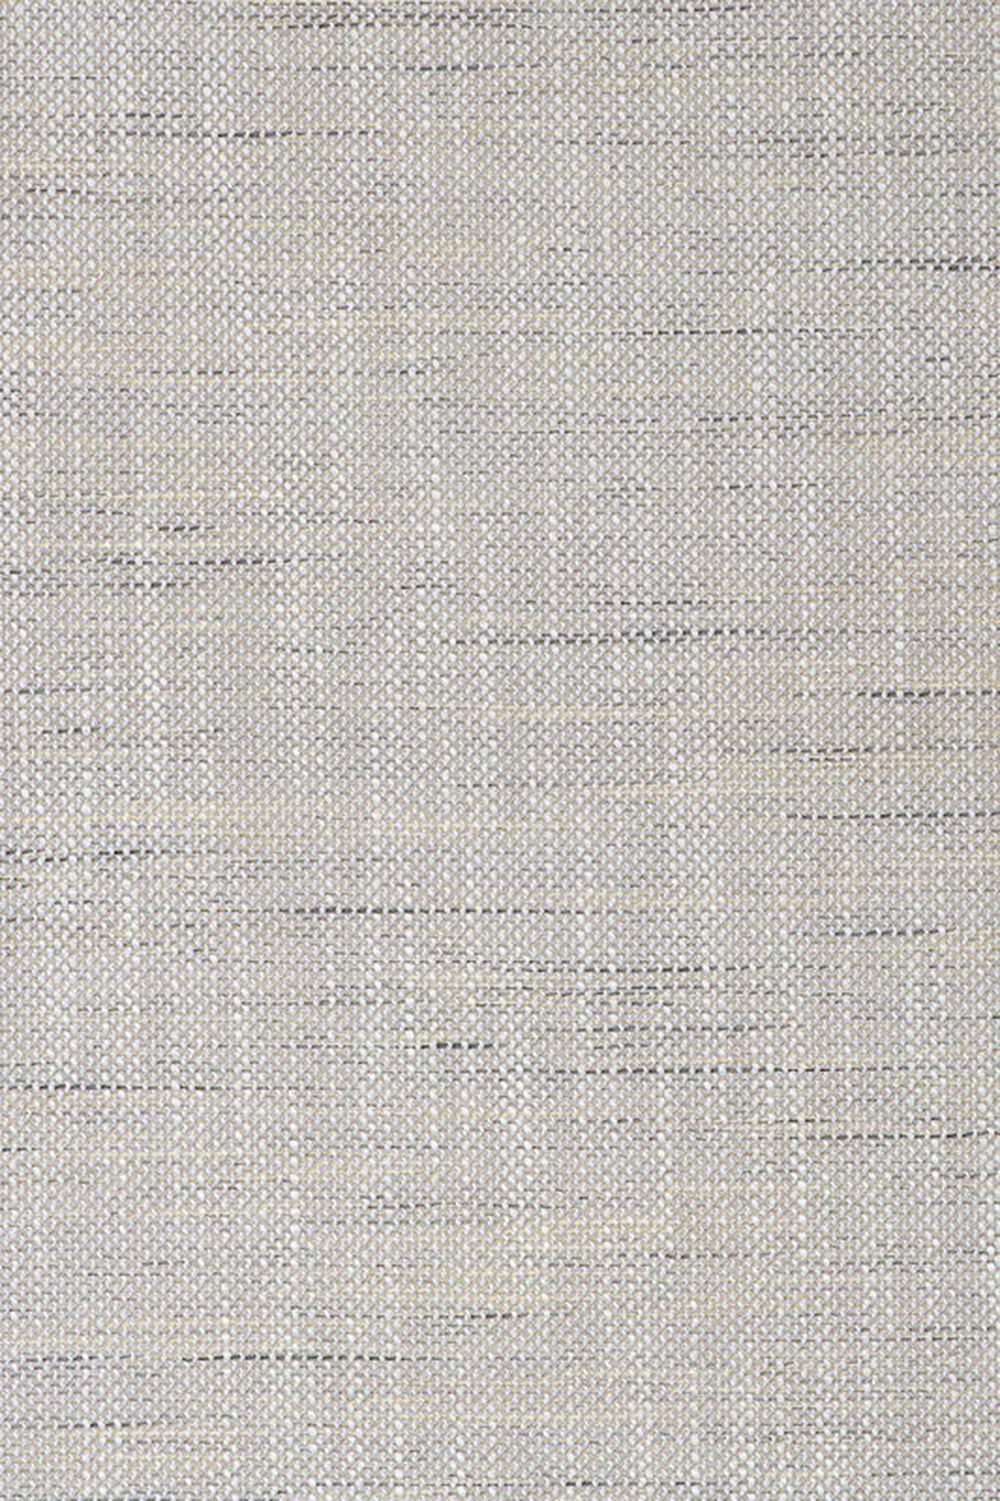 Photo of the fabric Rhodes Lunar swatch by Pegasus. Use for Upholstery Heavy Duty, Accessory. Style of Plain, Texture